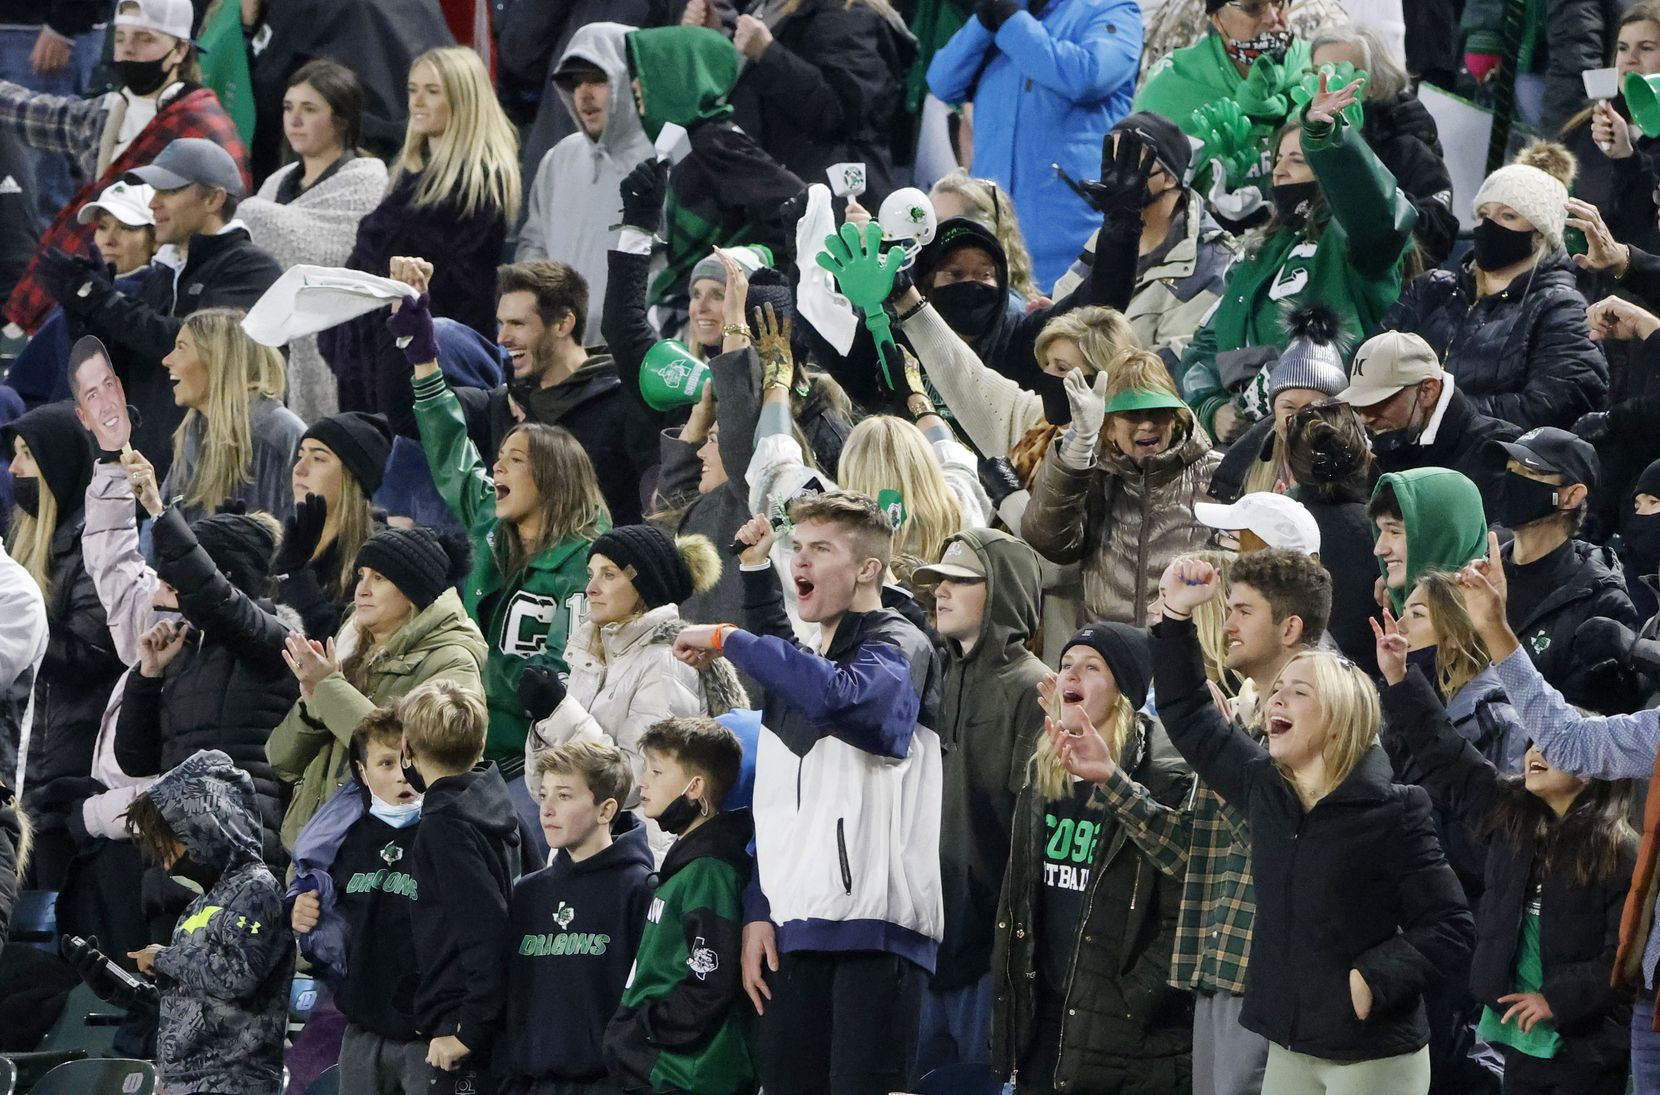 Southlake fans cheer during the Class 6A Division I state high school football semifinal against Duncanville,  in Arlington, Texas on Jan. 9, 2020. (Michael Ainsworth)